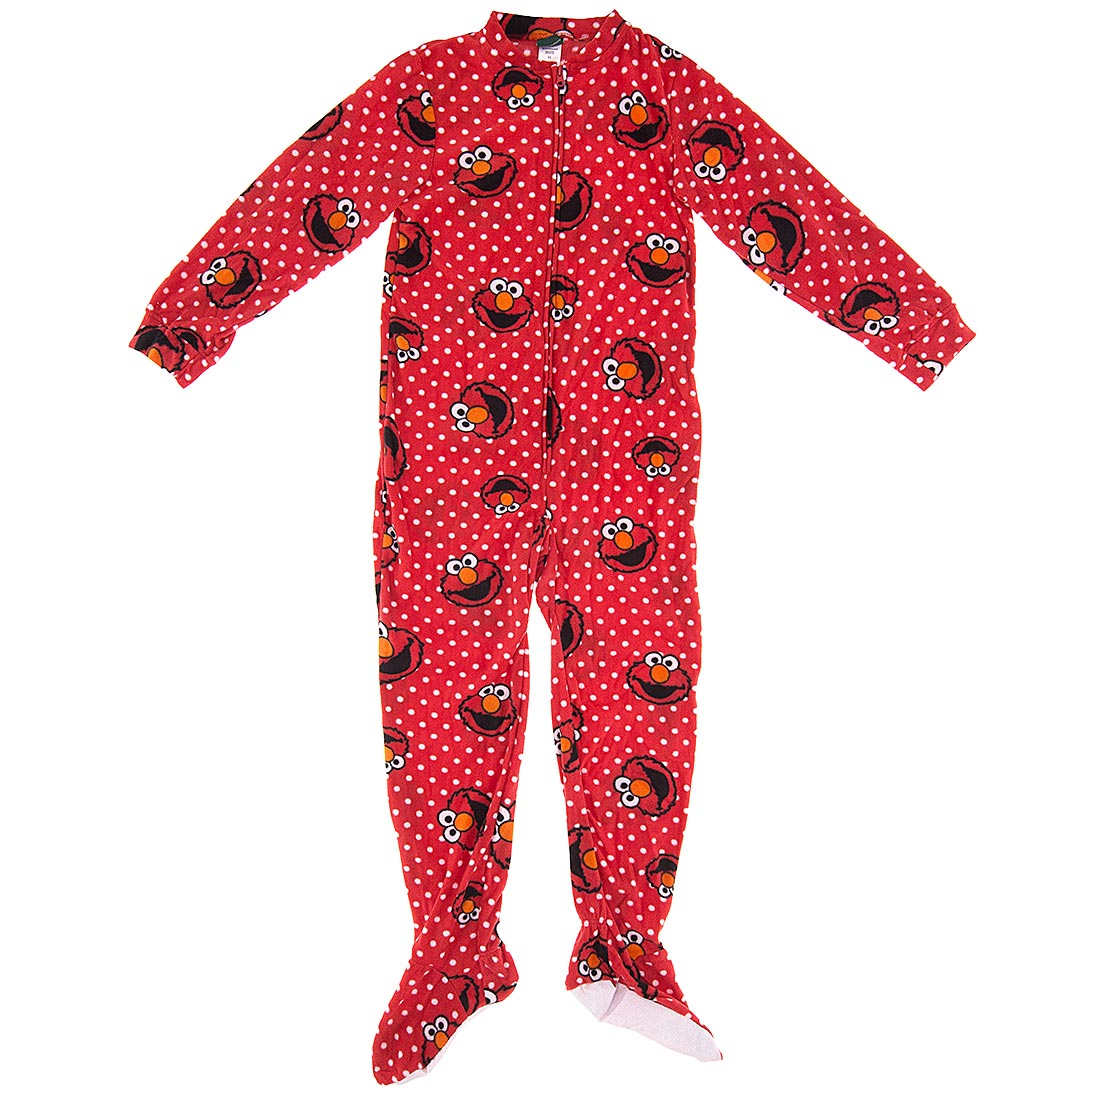 Pajamas clipart footie pajamas. Sandi pointe virtual library